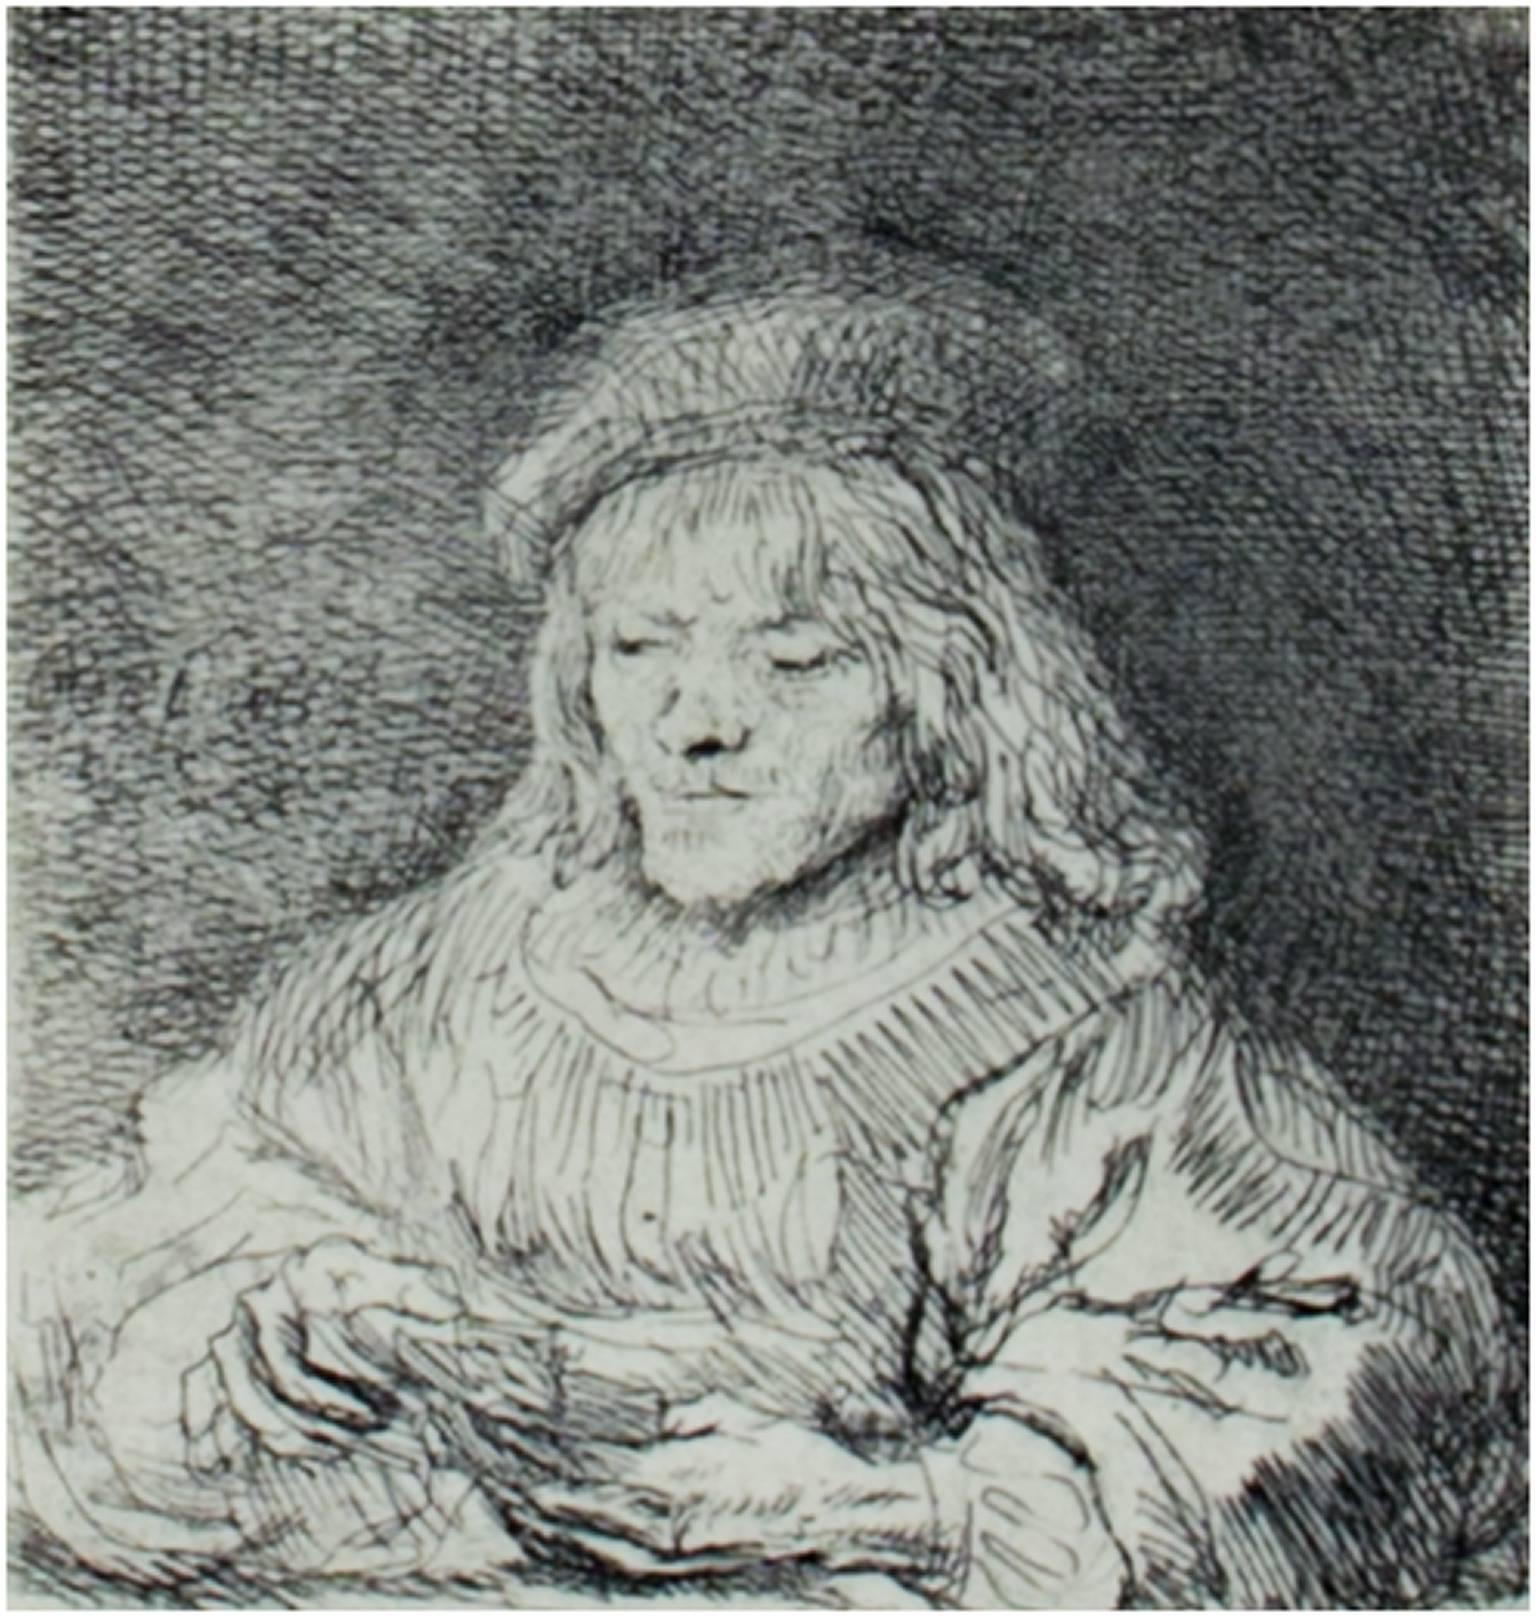 """""""The Card Player,"""" etching by Rembrandt van Rijn"""